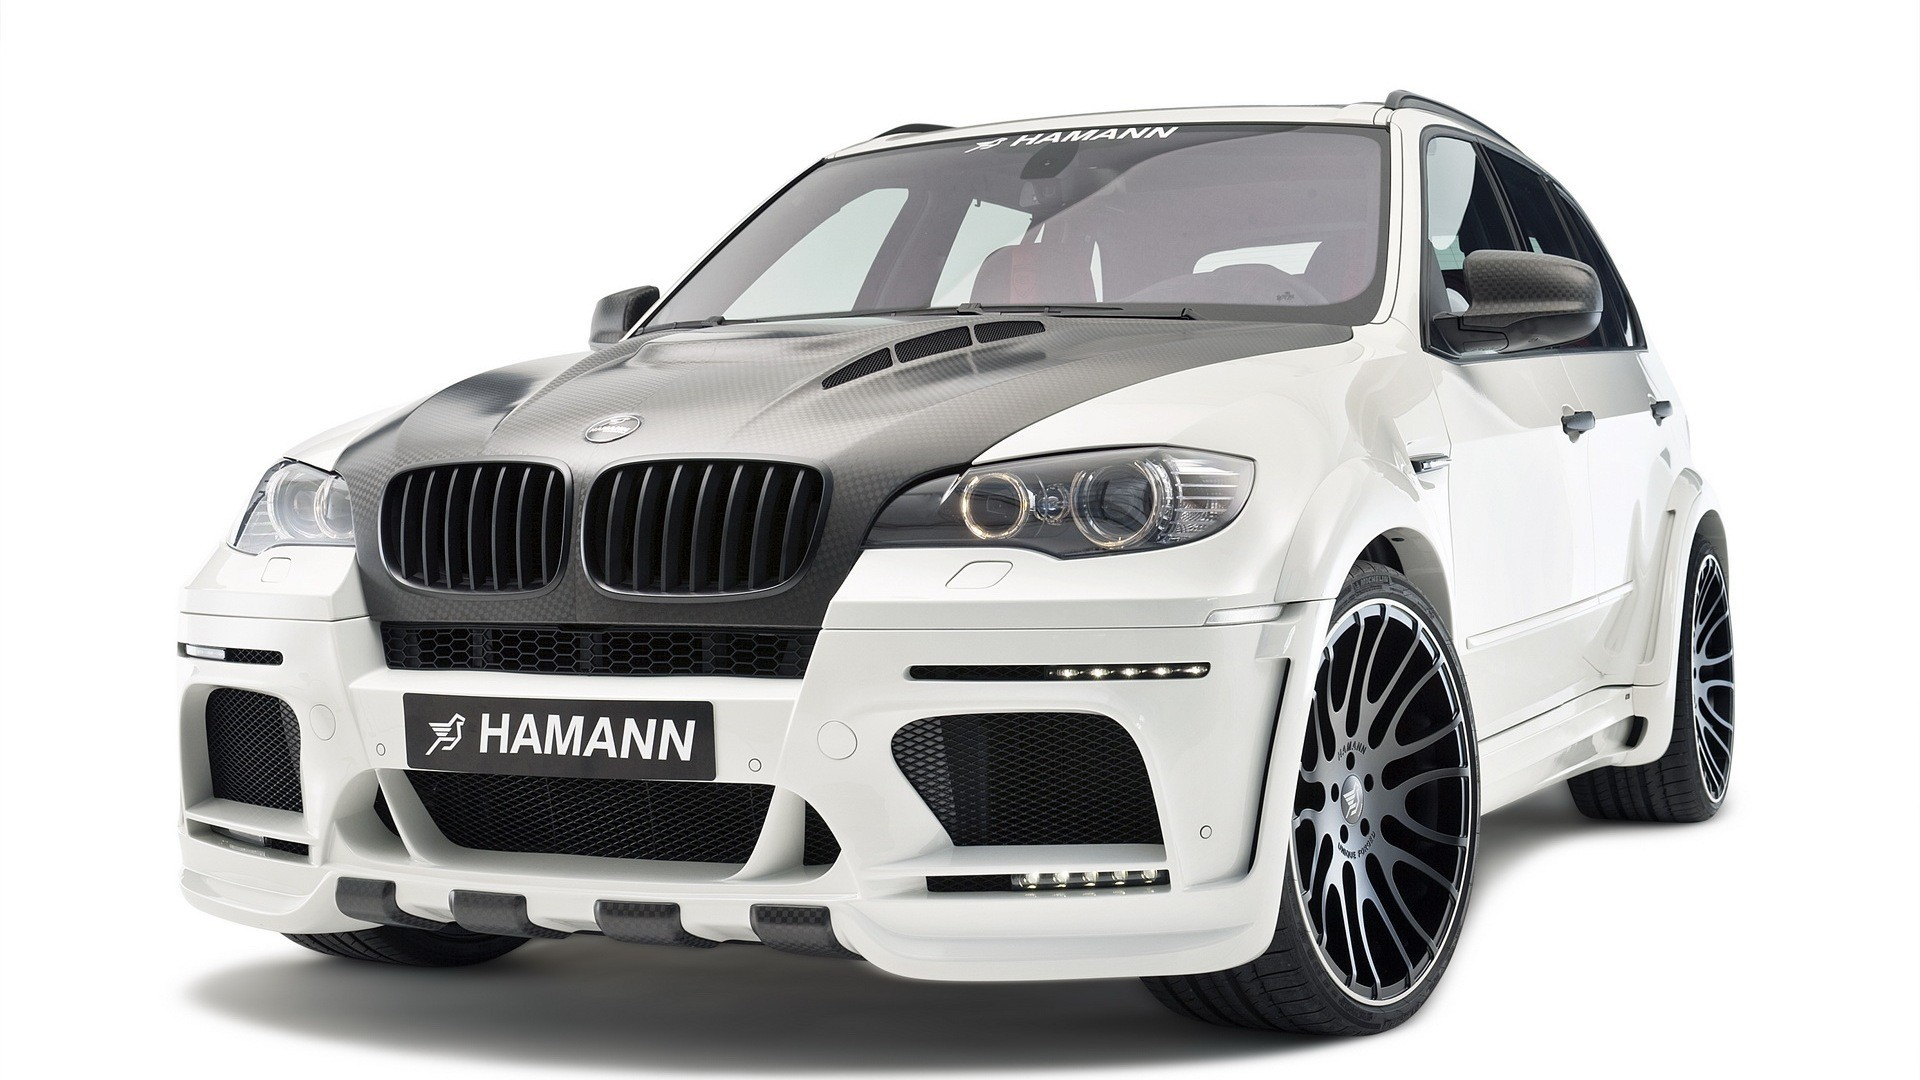 cars flash vehicles hamann HD Wallpaper